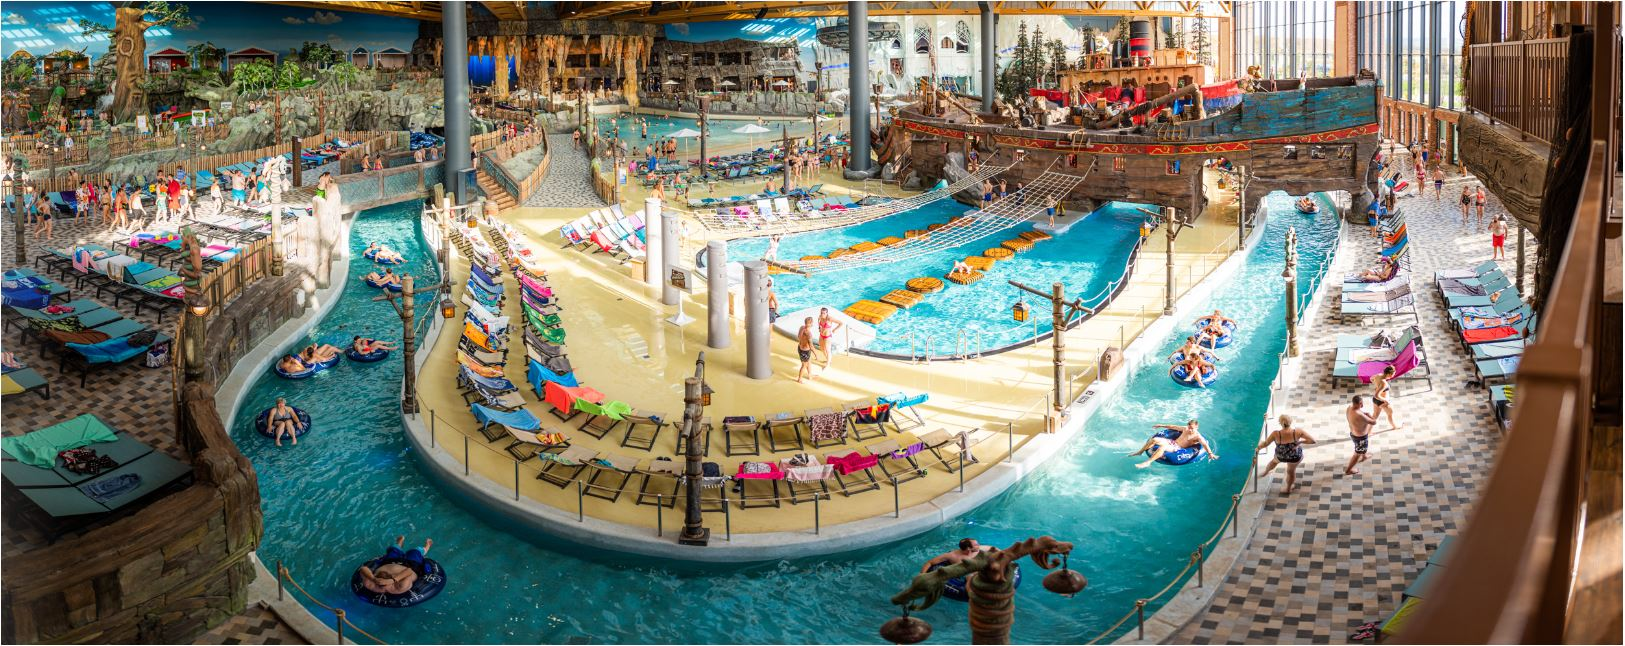 """A view of the impressive """"Rulantica"""" water world in the Europa Park in Rust. The Höhr-Grenzhausen family company, Steuler, had a significant part to play in the construction of the multi-million euro project."""